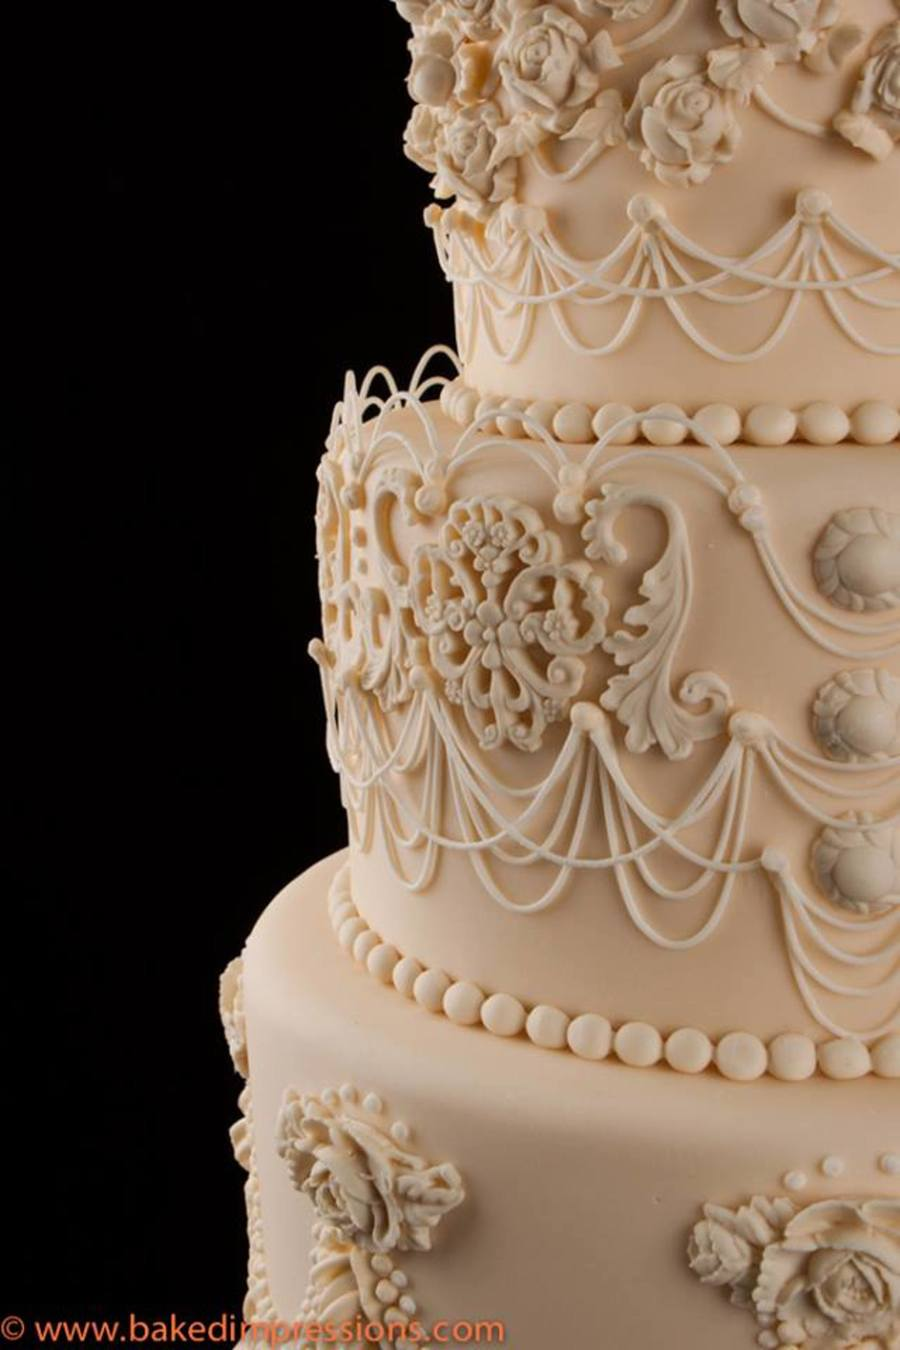 String Work Wedding Cake Cakecentral Com